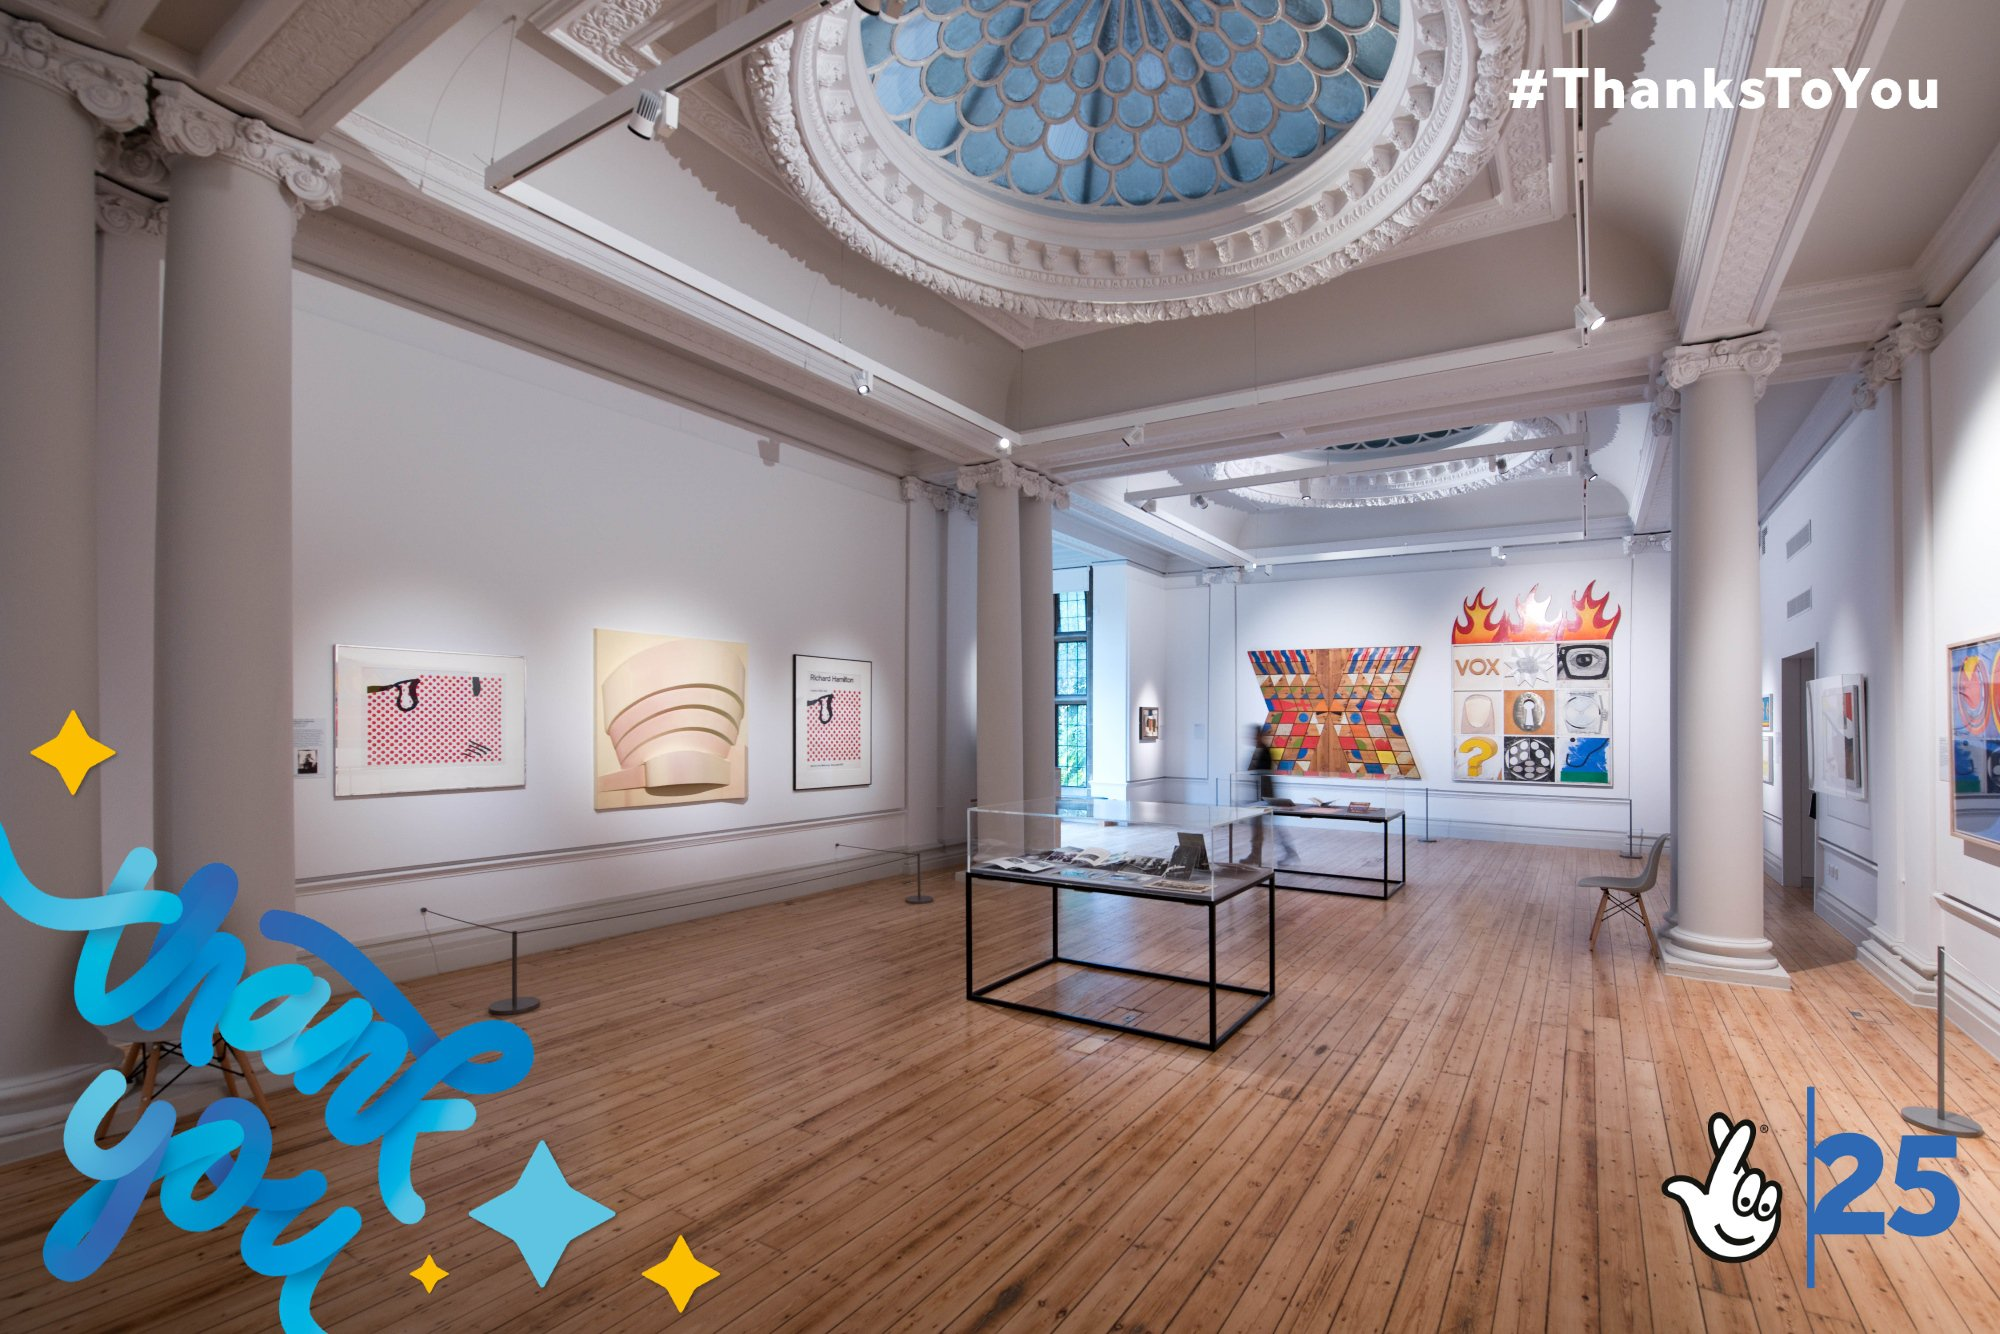 Interior view of the Hatton Gallery, showing 'pop' artworks hung on the walls